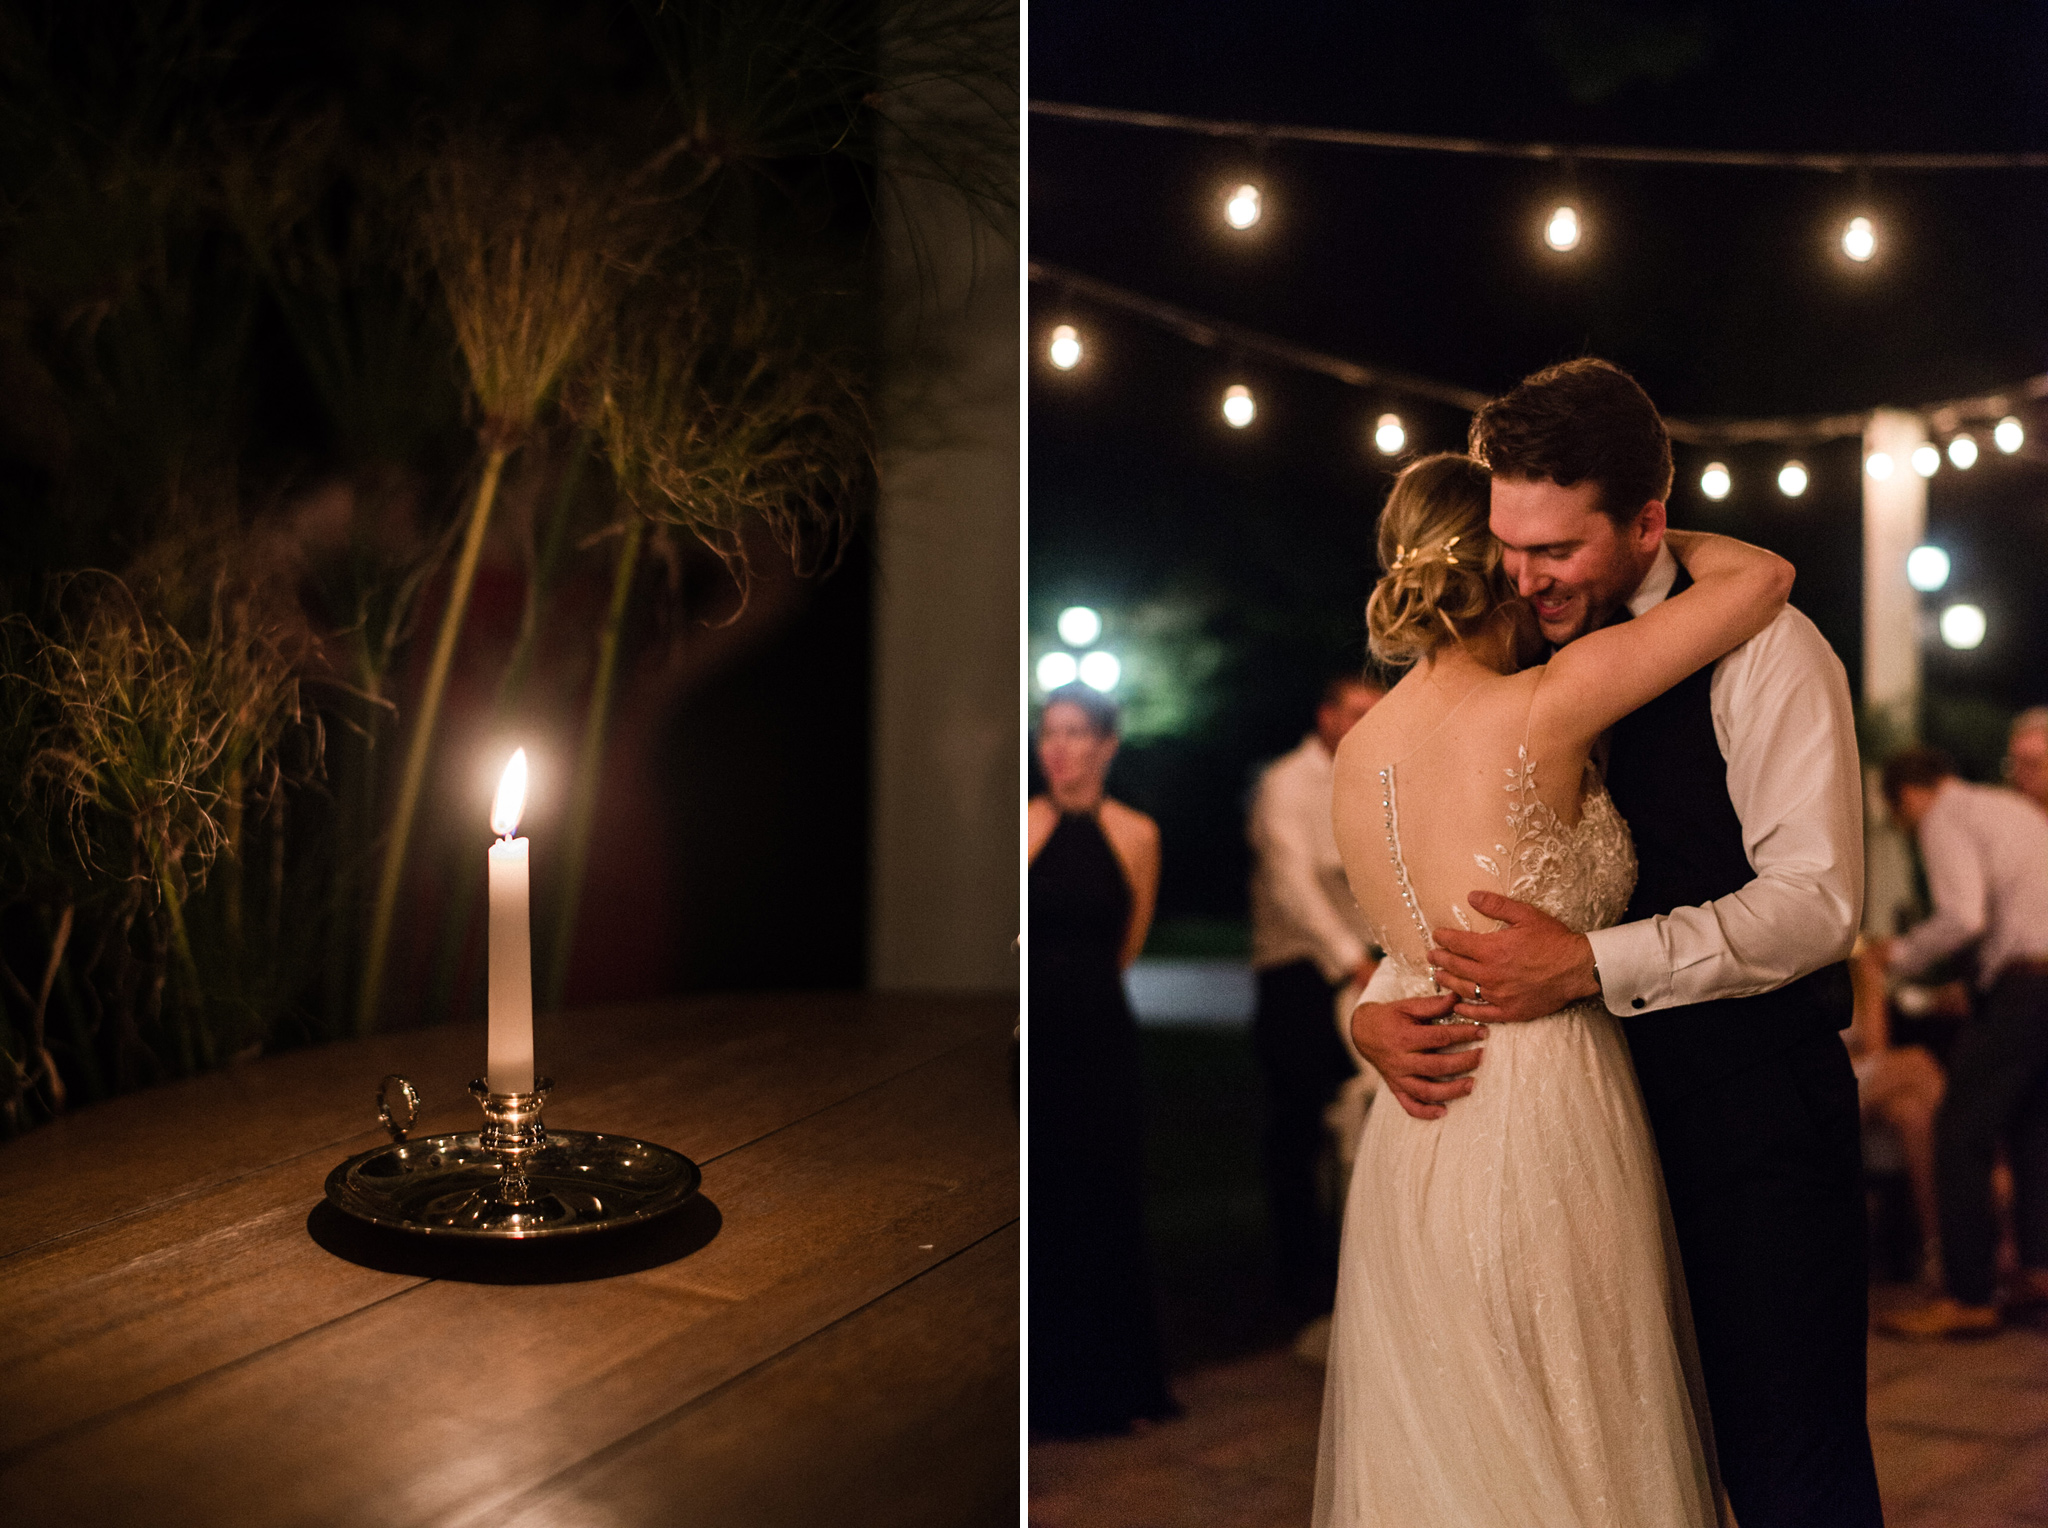 213-penryn-park-first-dance-string-lights-outdoor-wedding.jpg